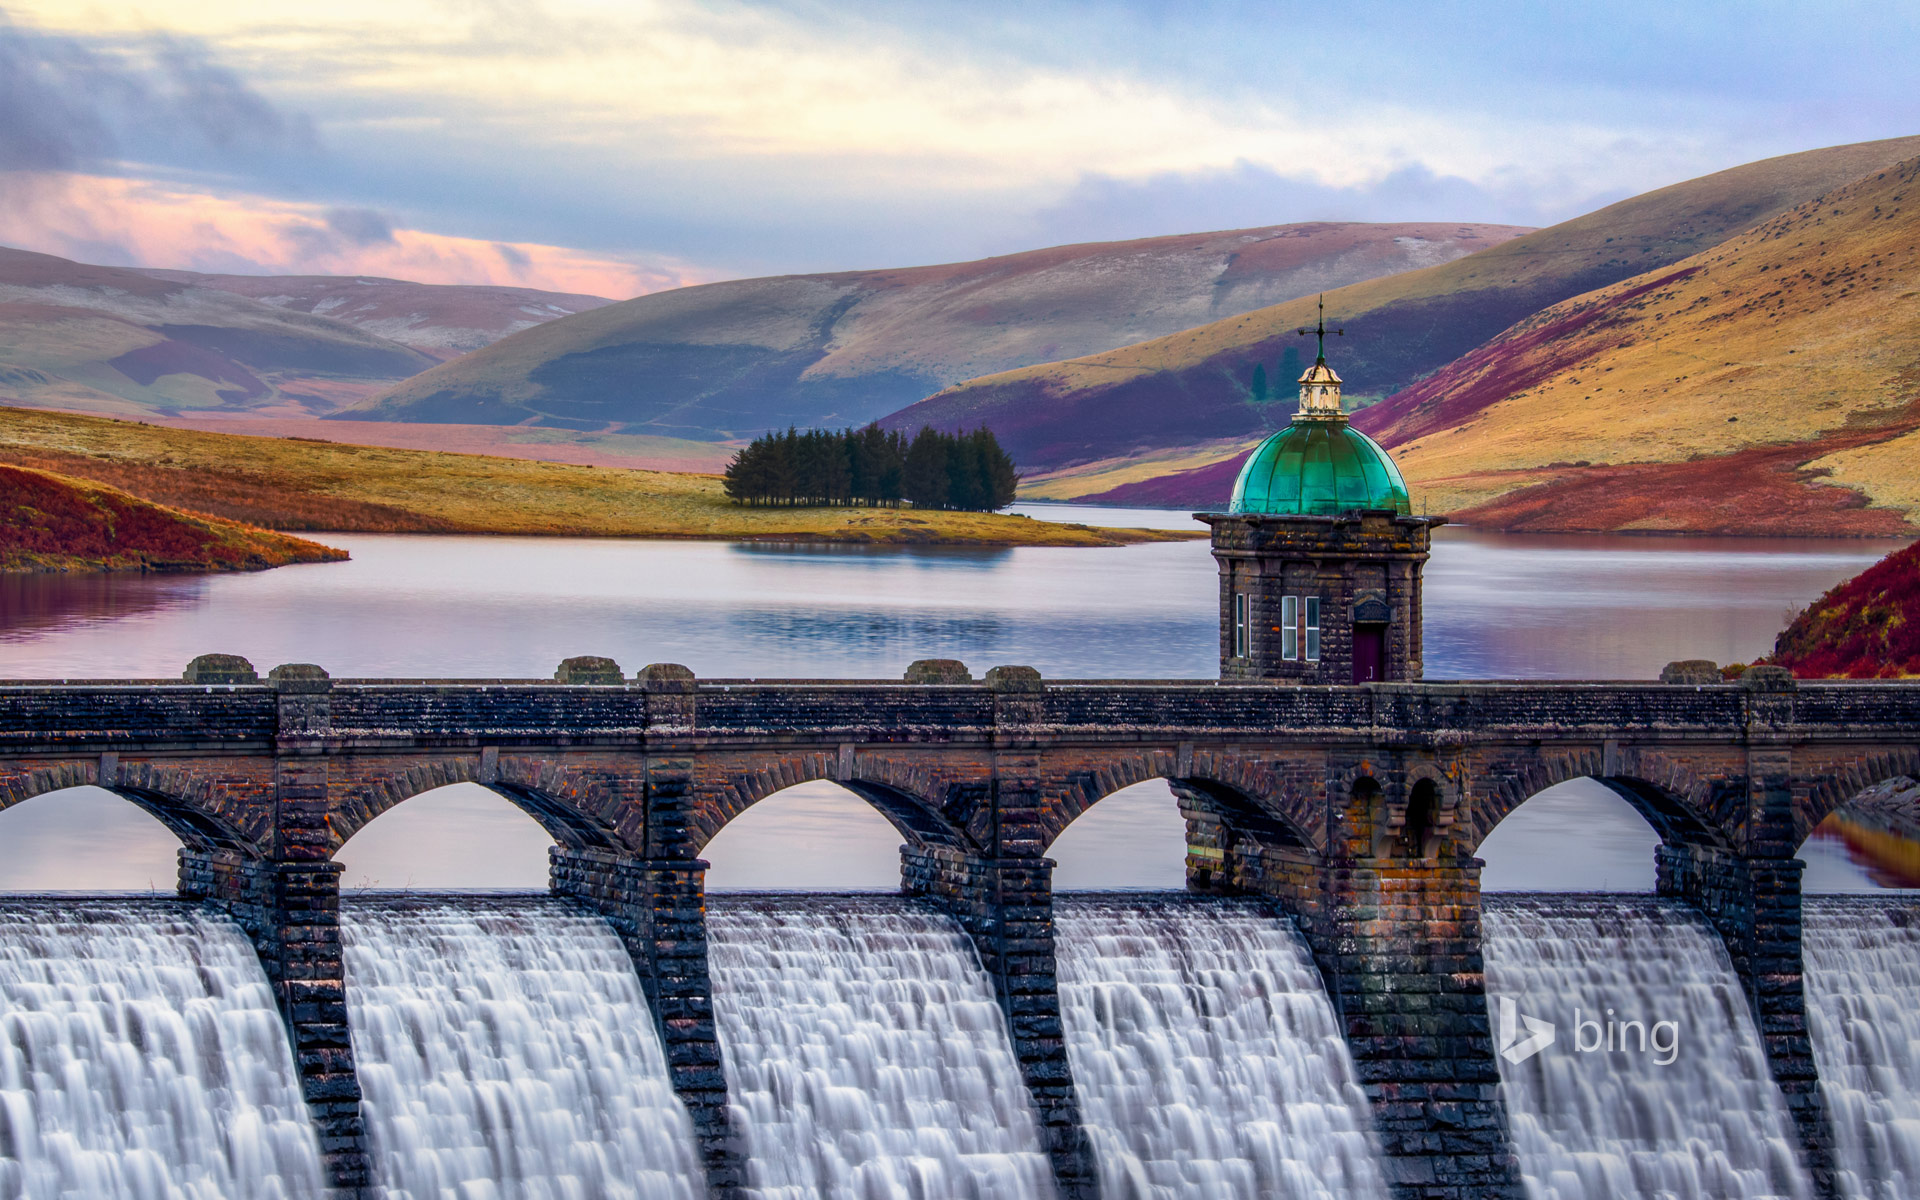 Craig Goch Dam in the Elan Valley, Wales